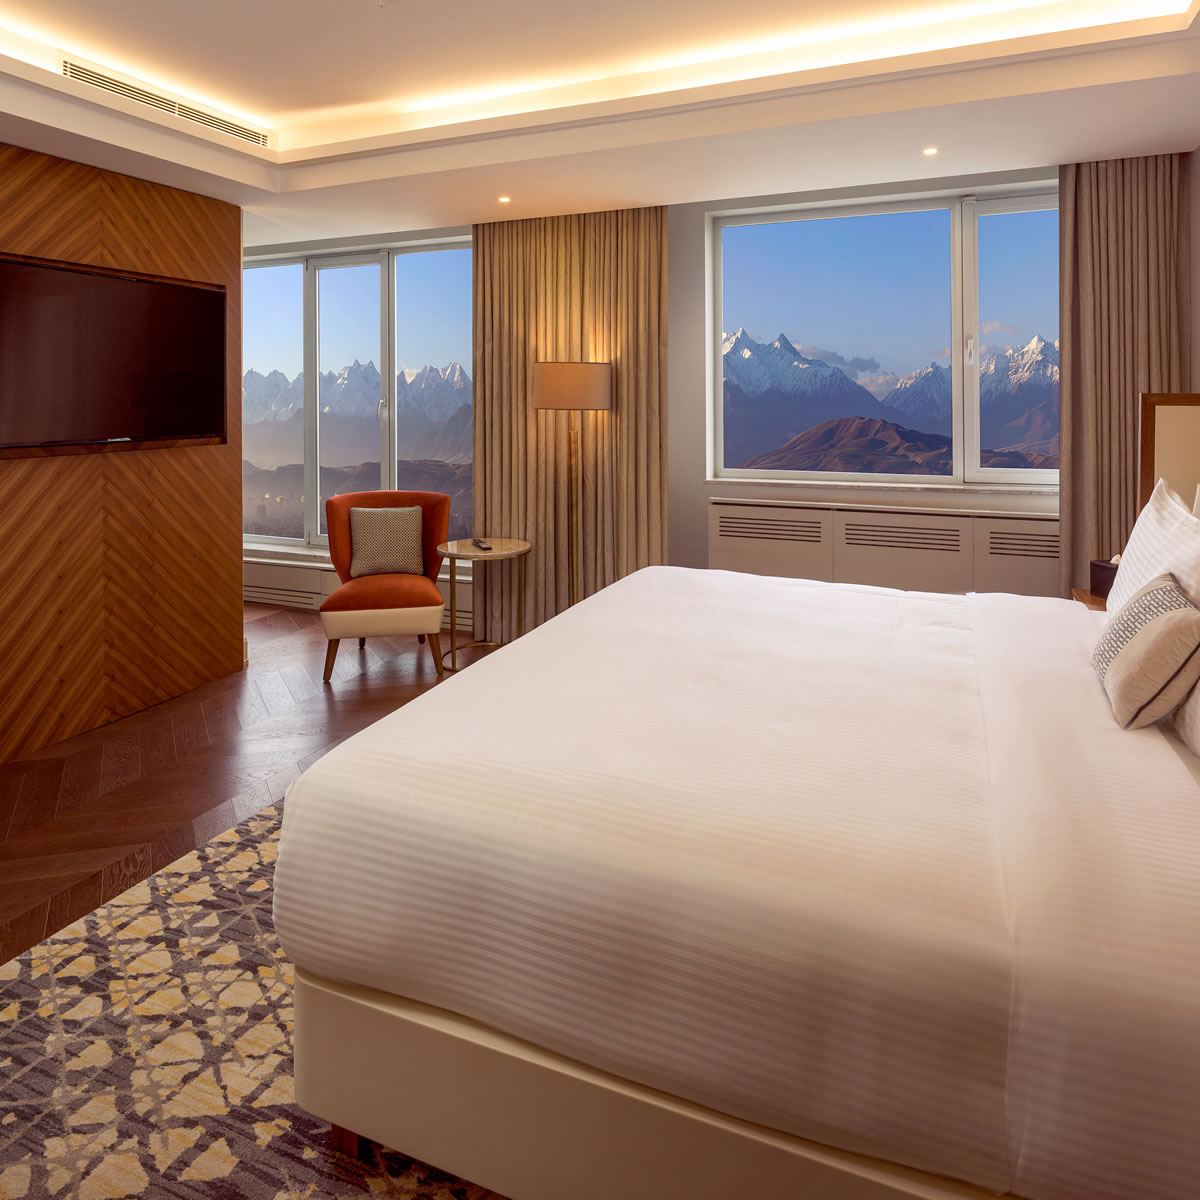 Lavish, spacious and awe-inspiring views, our Executive Suite will leave you with the most memorable stay. • #sheratonbishkek #visitbishkek  #suite #comfort #instagood #instadaily #travelgram #bestoftheday #luxurytravel #betterwhenshared #sheratonhotels #hotels #bishkek